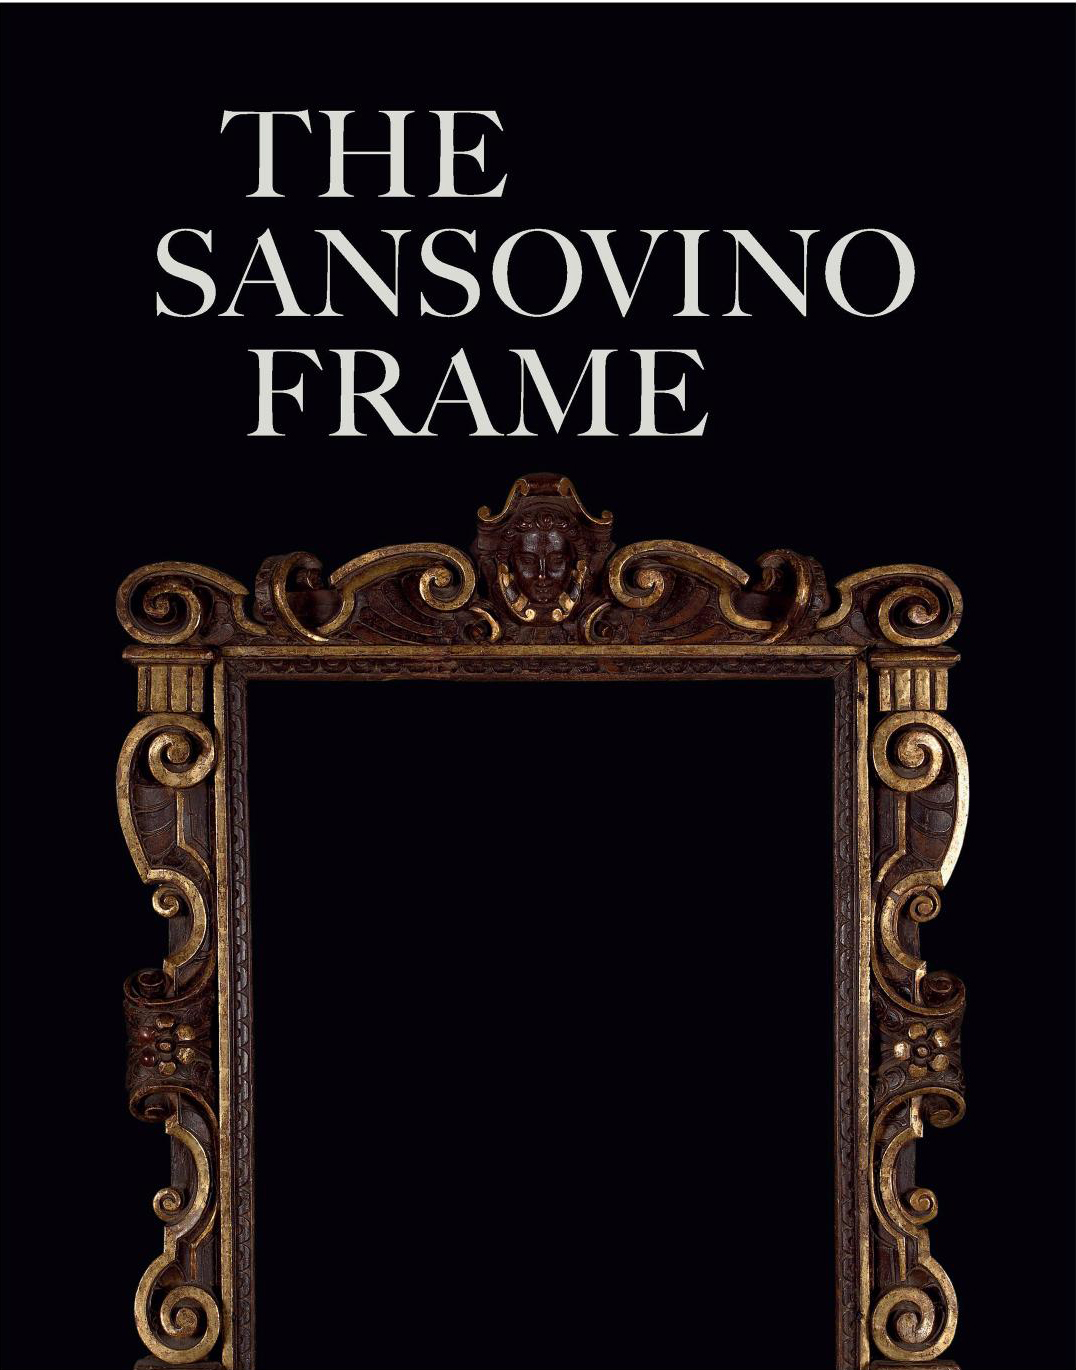 Frames In Focus Sansovino Frames An Exhibition At The National